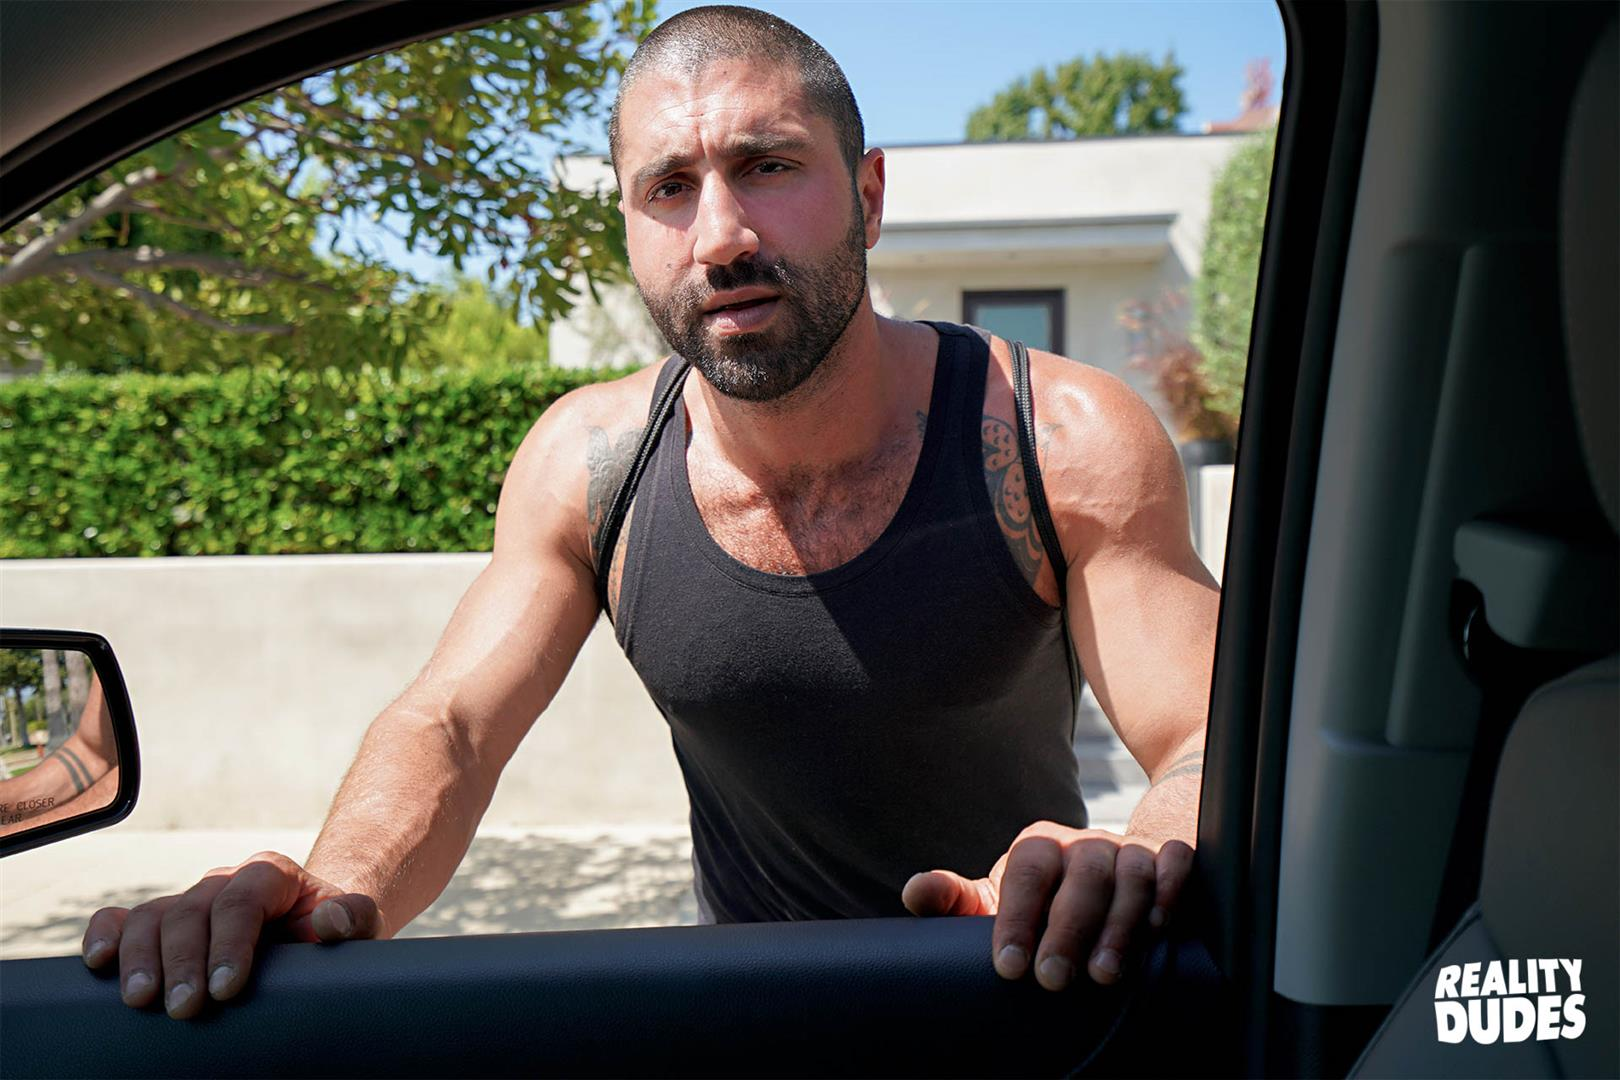 Reality-Dudes-Sharok-Straight-Guy-Gets-Fucked-In-Hairy-Ass-For-Cash-13 Paying A Straight Muscle Hunk To Let Me Fuck His Hairy Ass